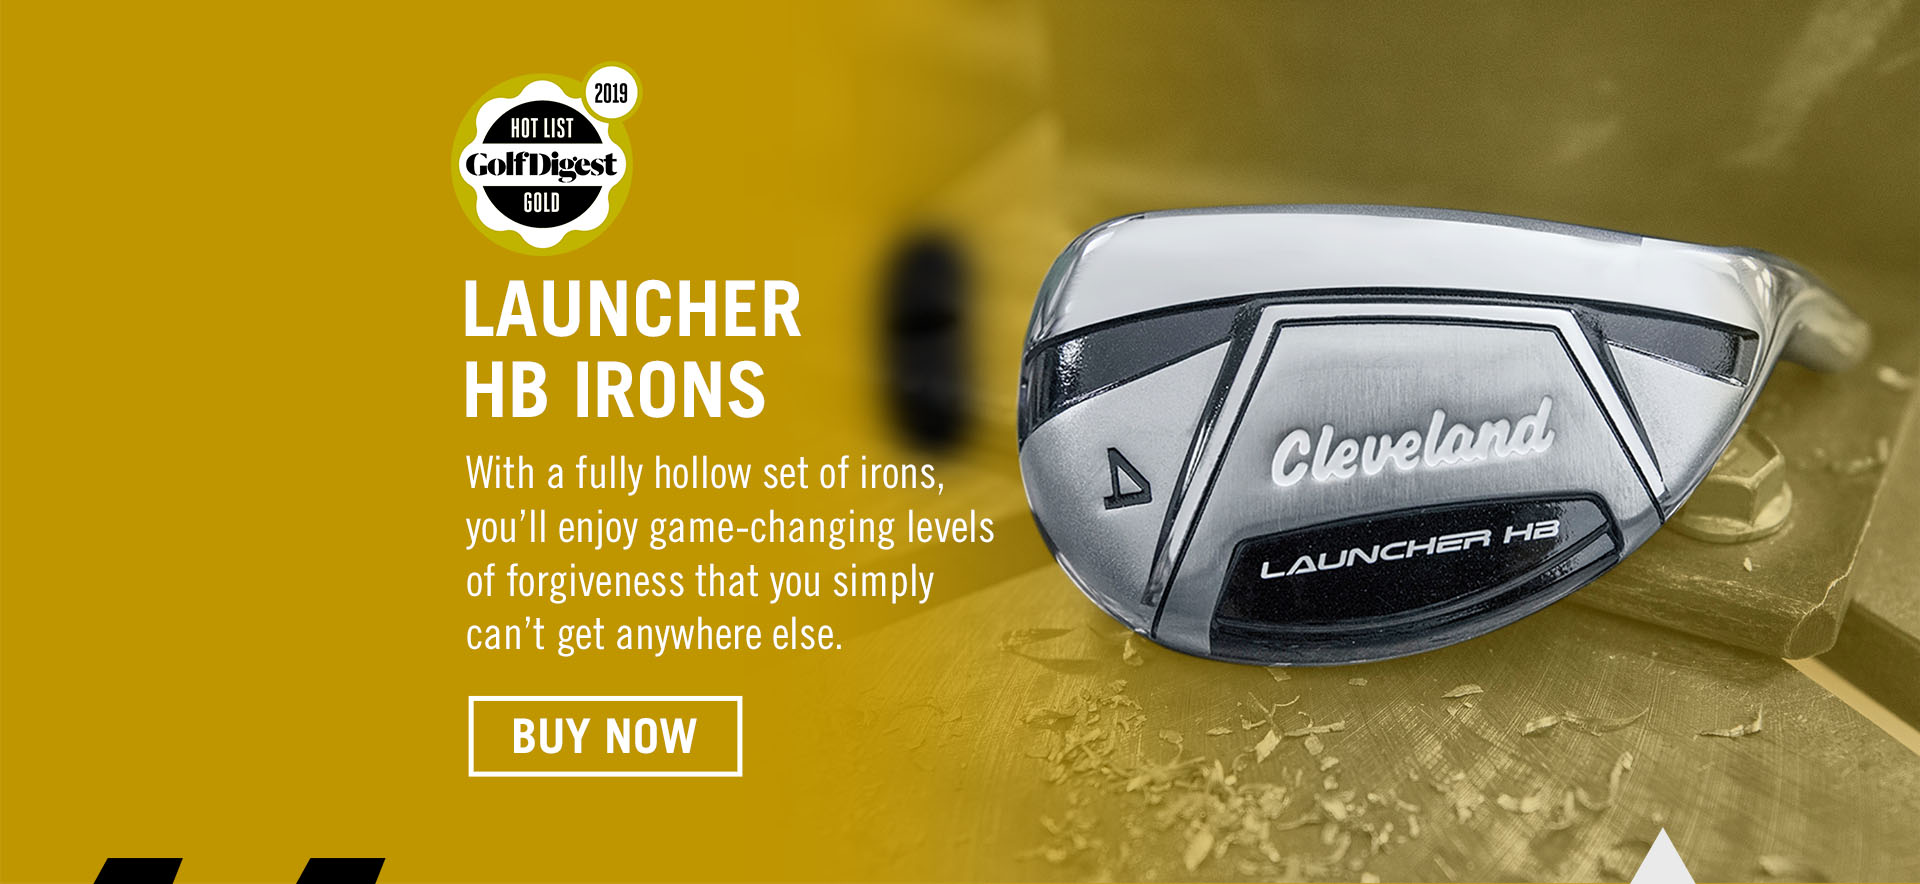 Launcher HB Irons